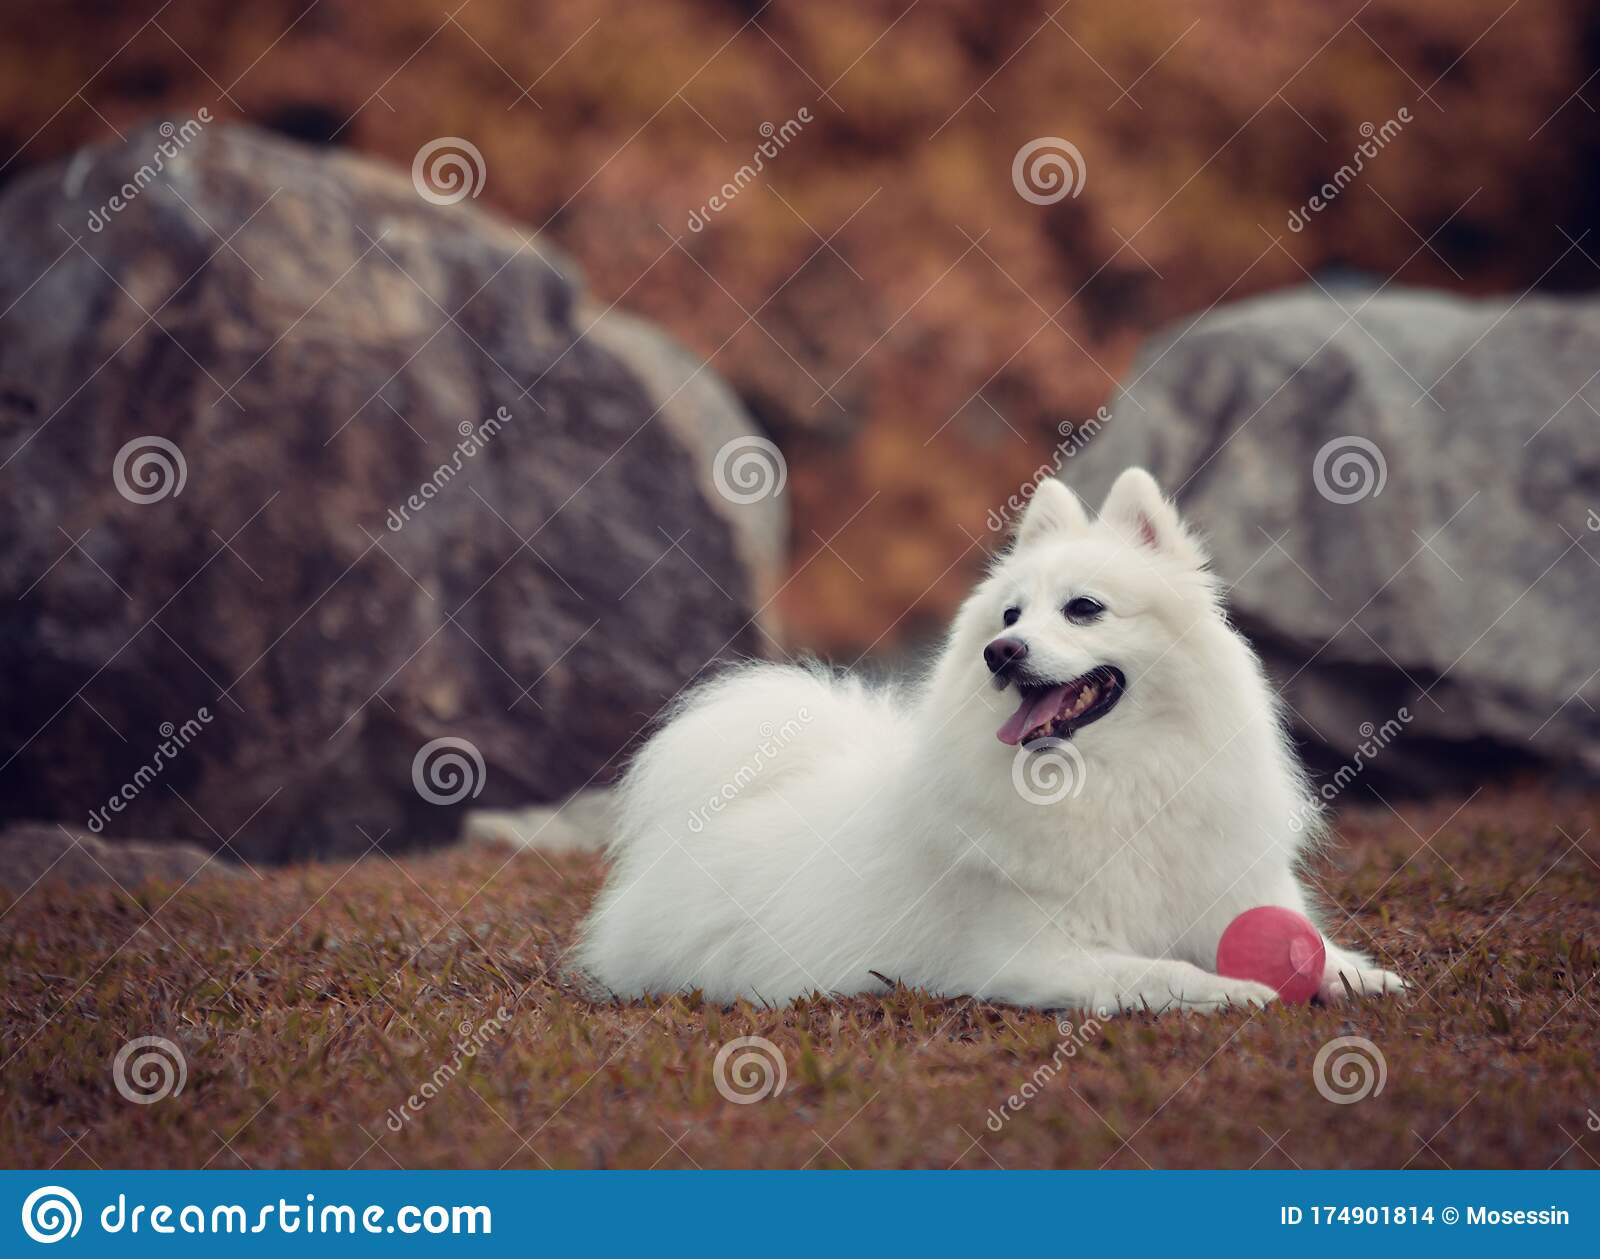 969 Japanese Spitz Dog Photos Free Royalty Free Stock Photos From Dreamstime